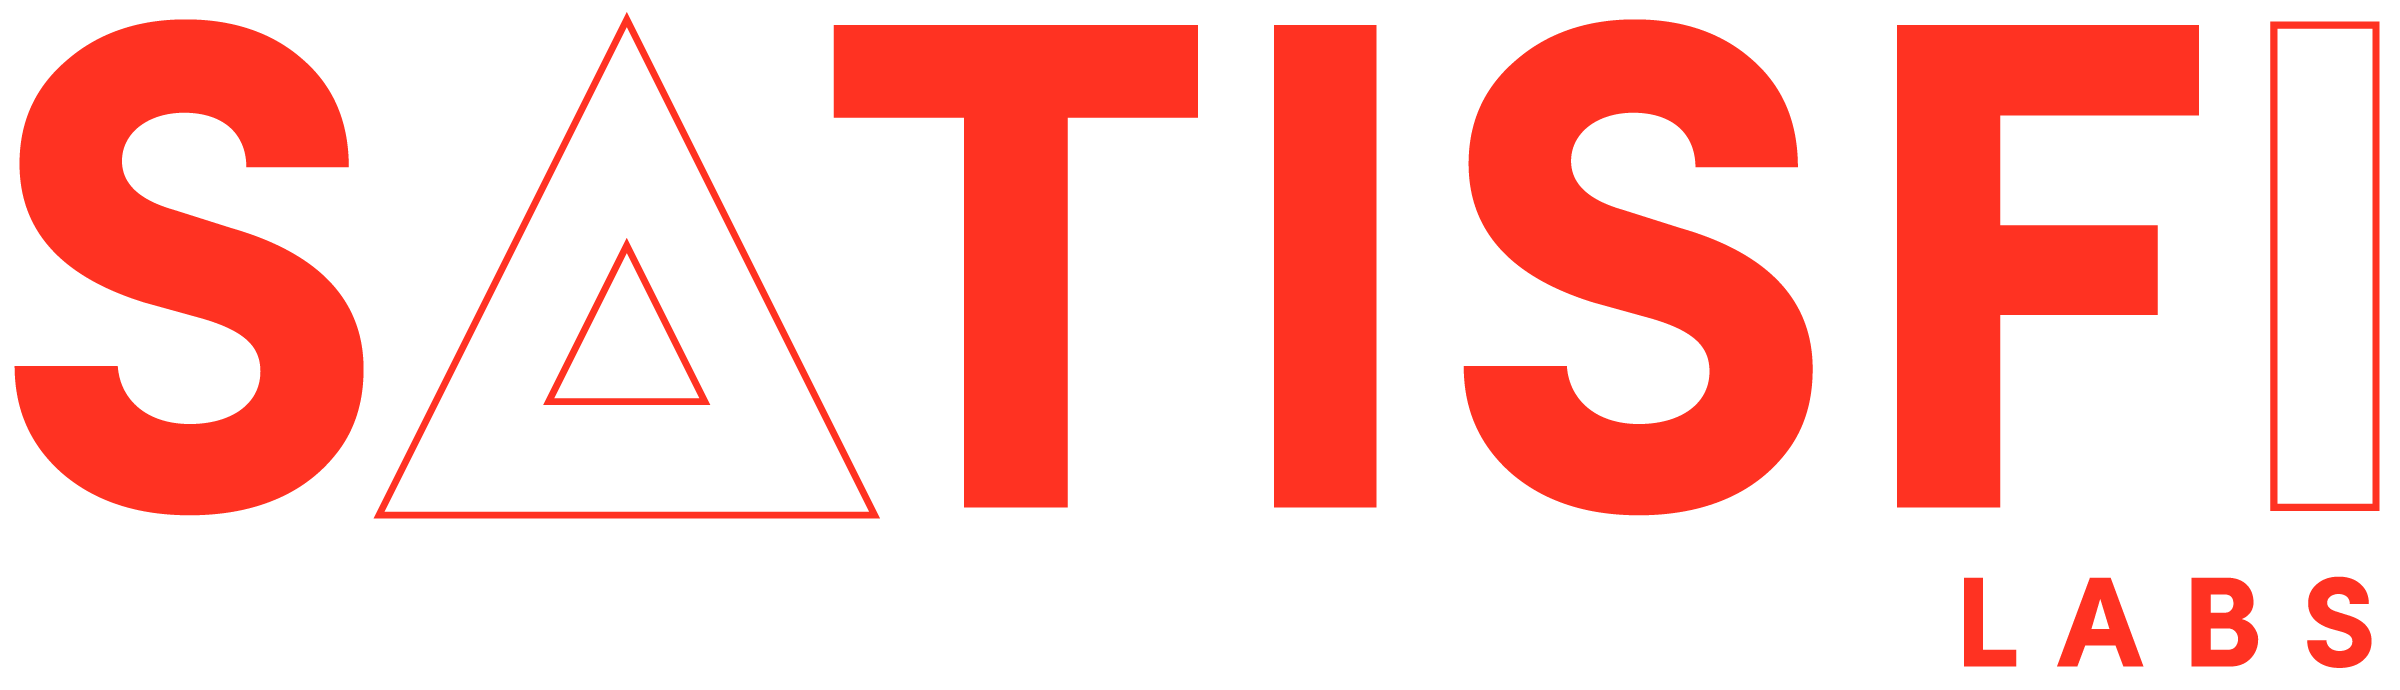 satisfilabs logo